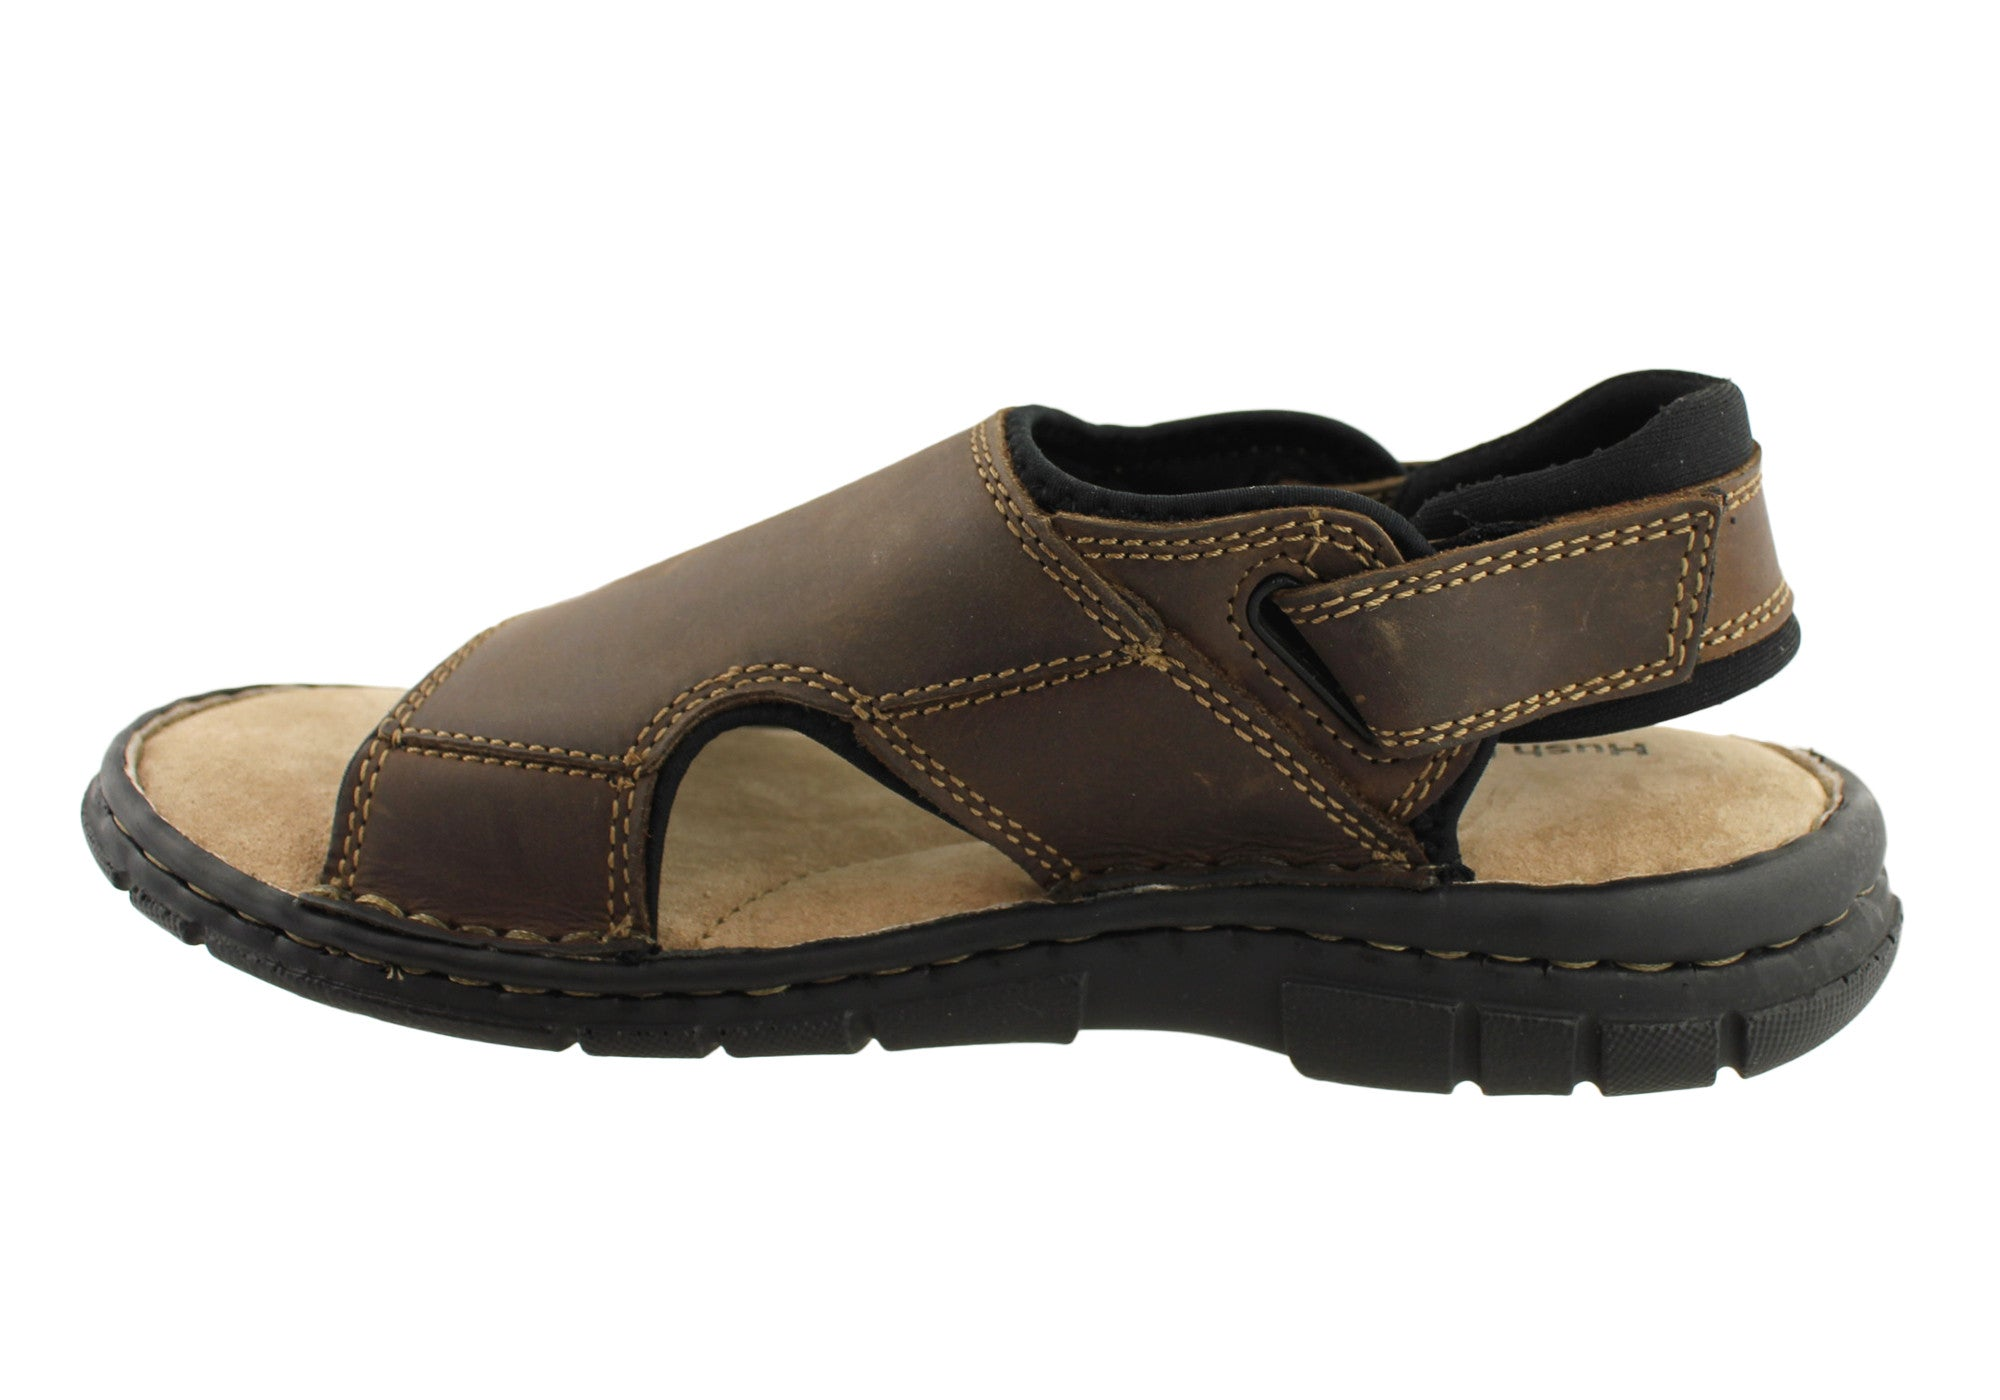 Hush Puppies Wake Mens Leather Sandals